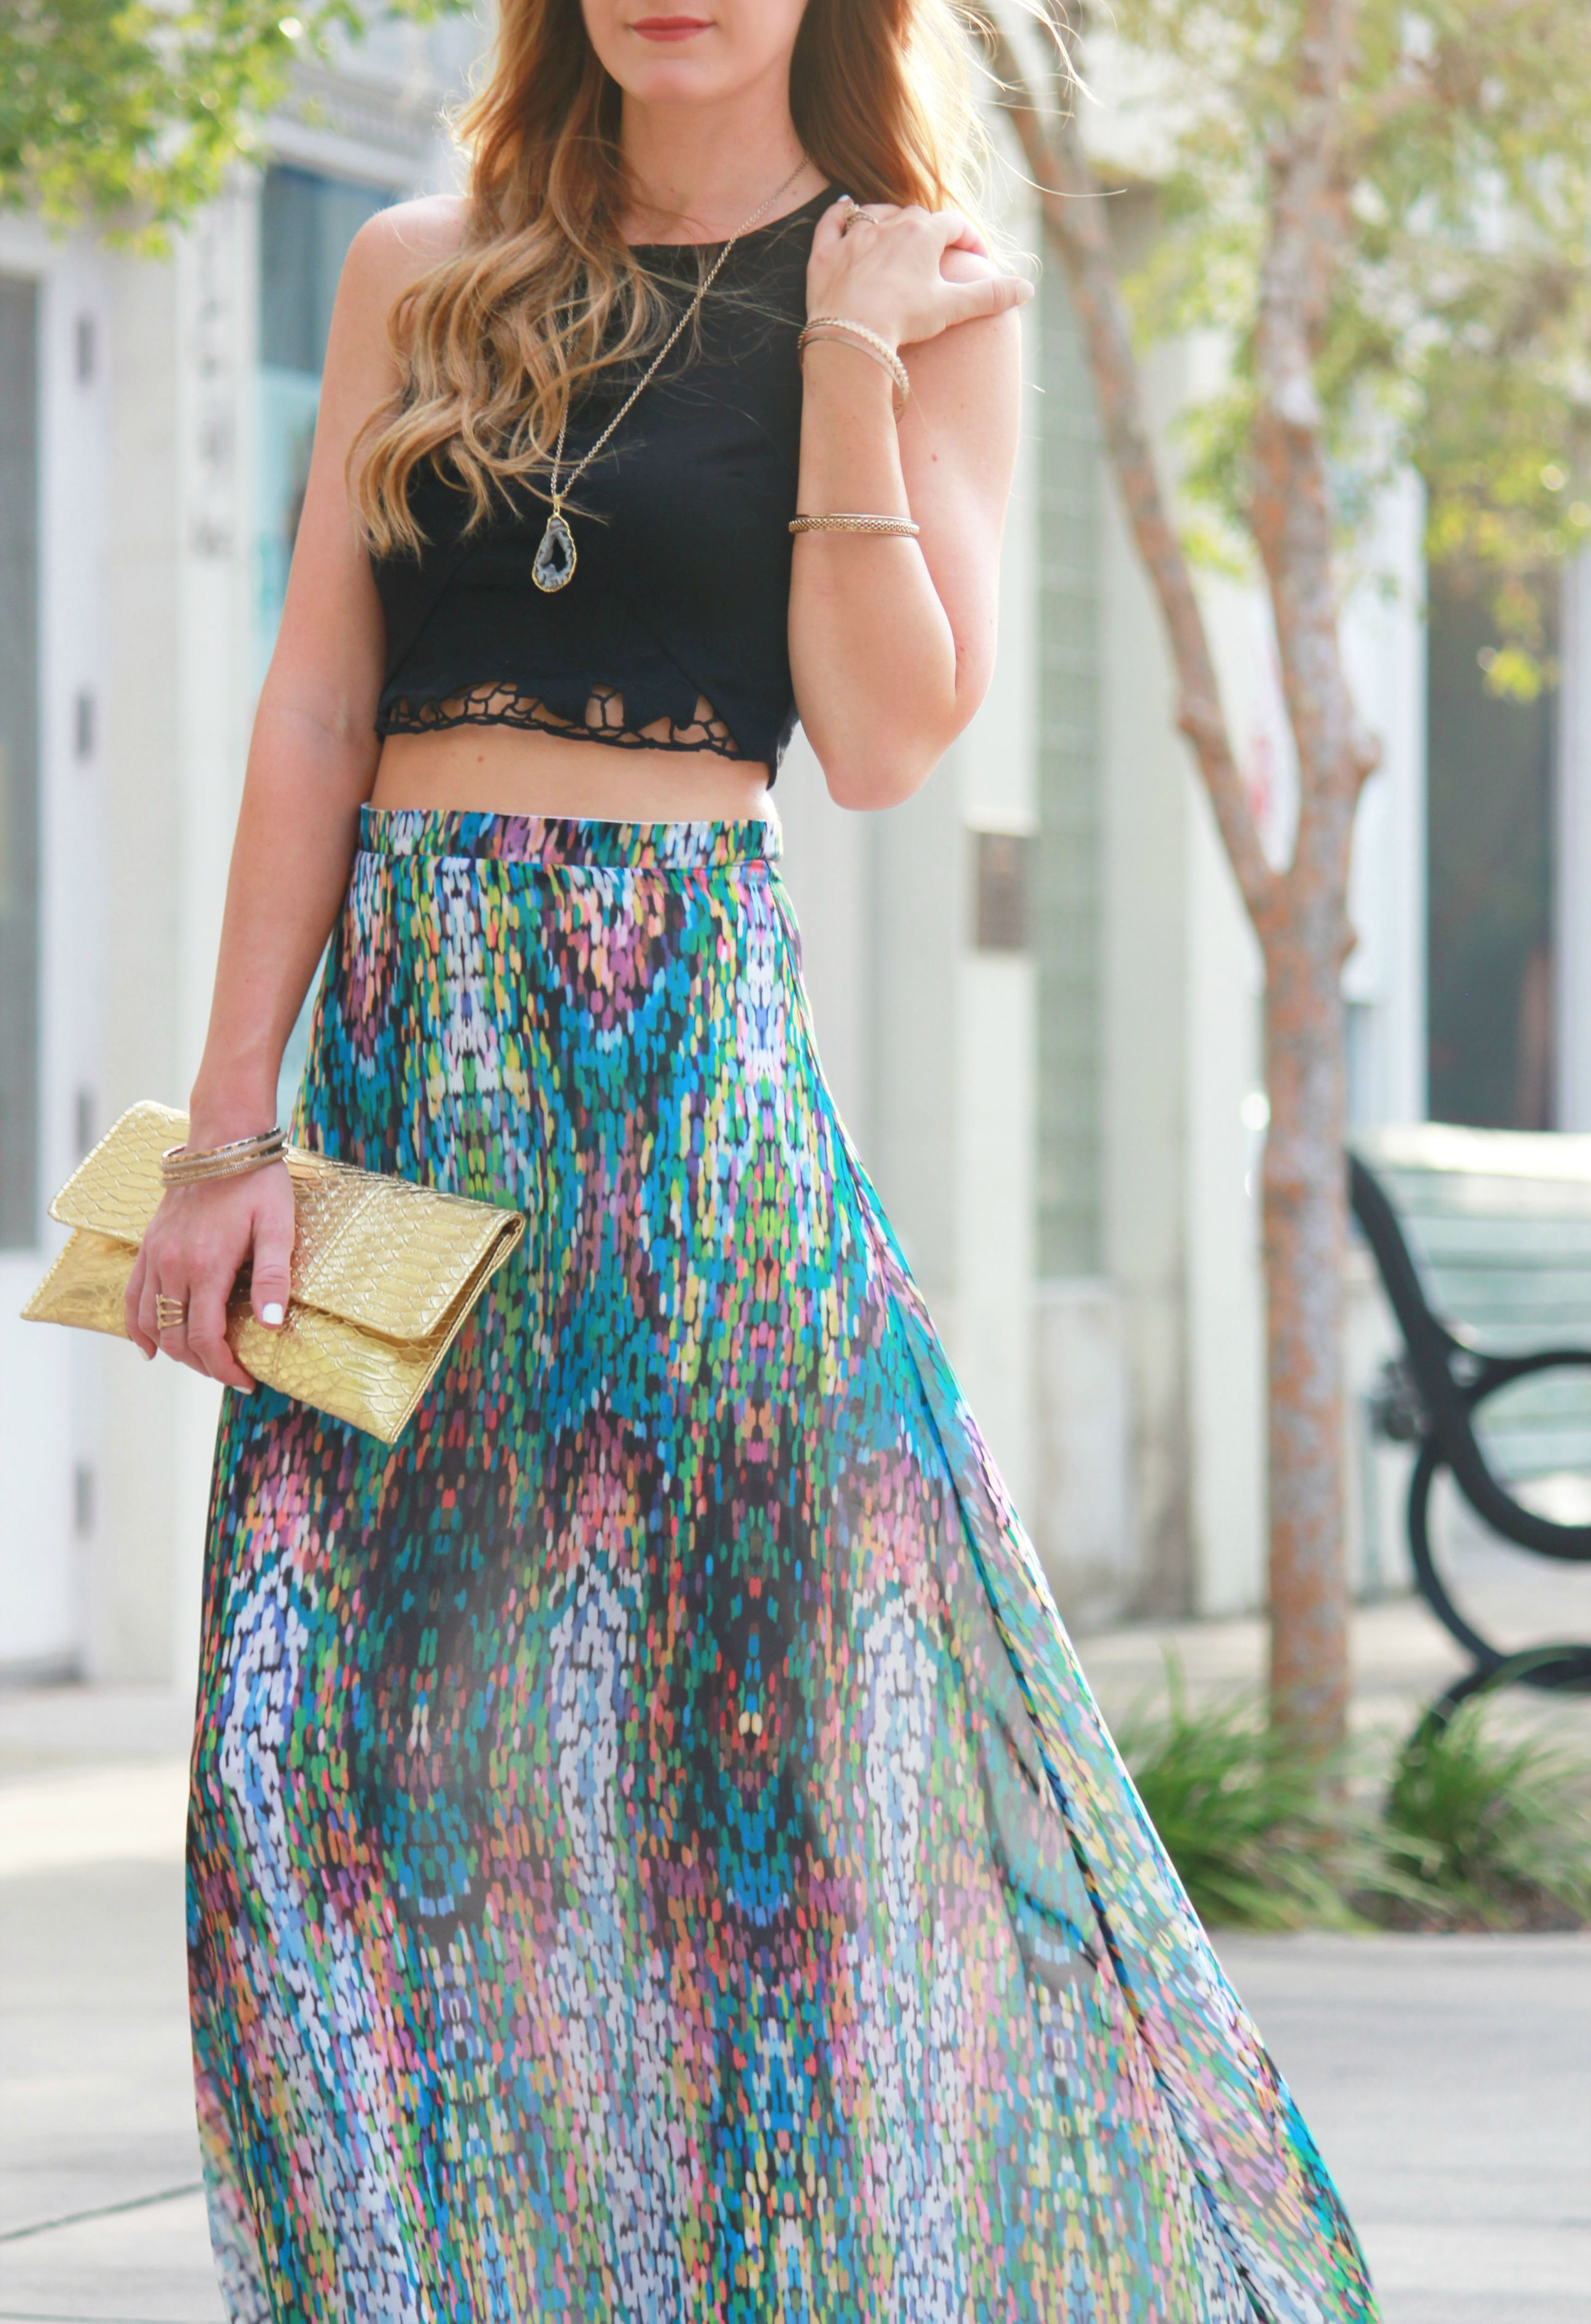 shabby apple skirt, gb crop top, lace crop top, mosaic print skirt, maxi skirt and crop top, maxi skirt outfit, summer outfit, date night outfi